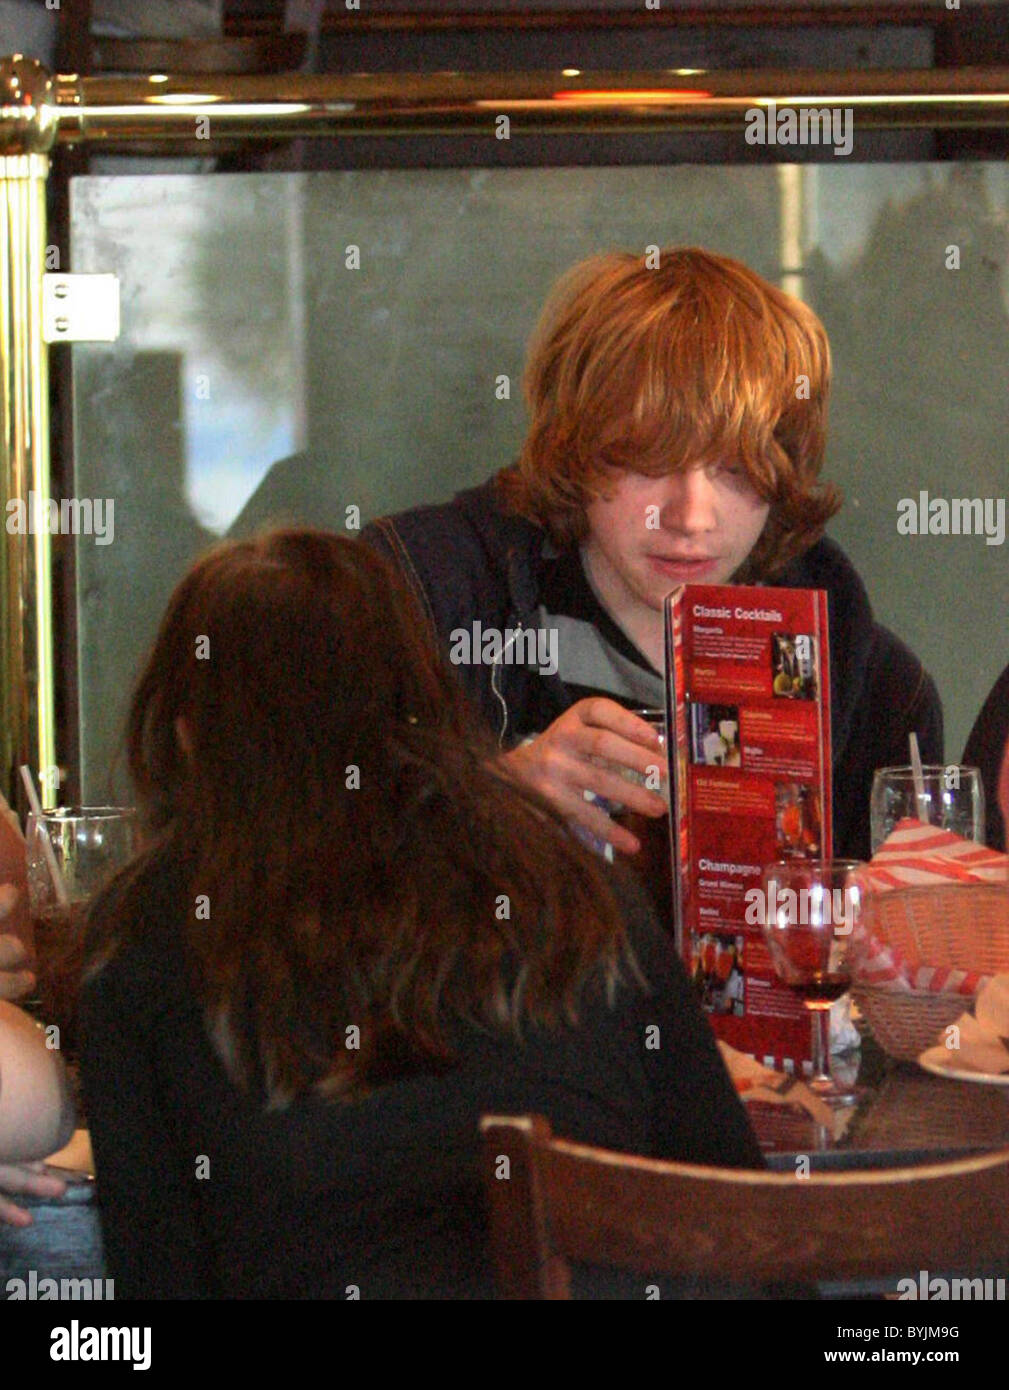 Rupert Grint Attends His Sister Charlottes 7th Birthday Party At TGI Fridays In North London Where He Also Had Dinner With